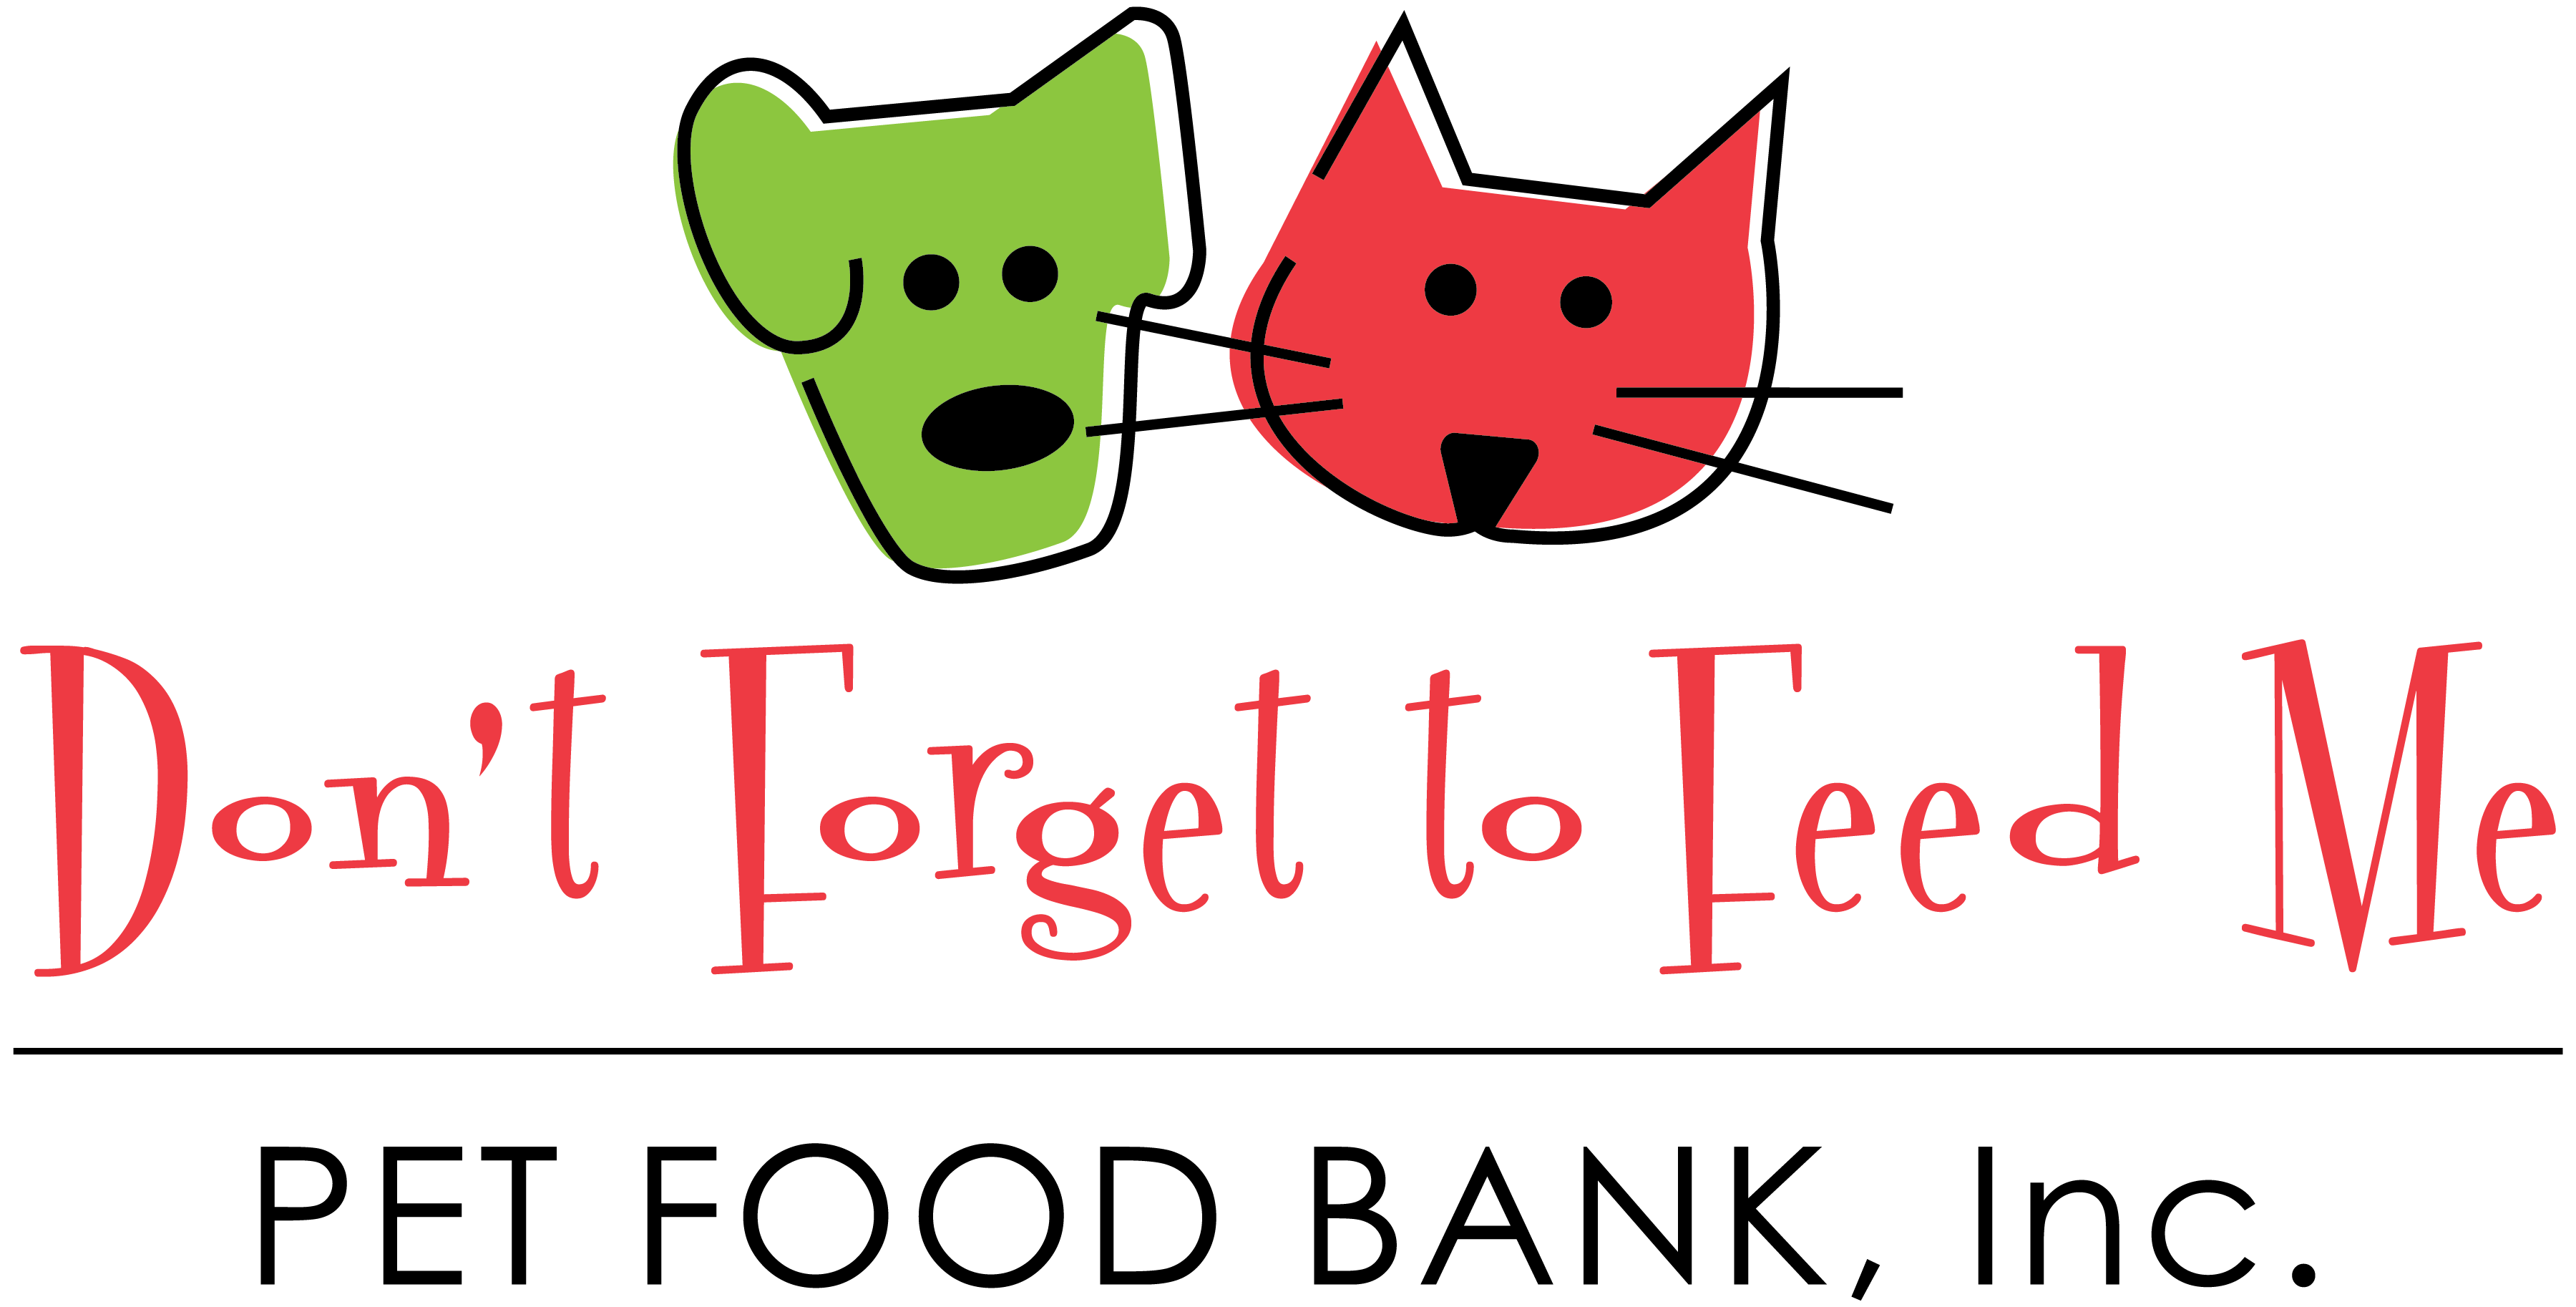 Dont forget to Feed Me's logo